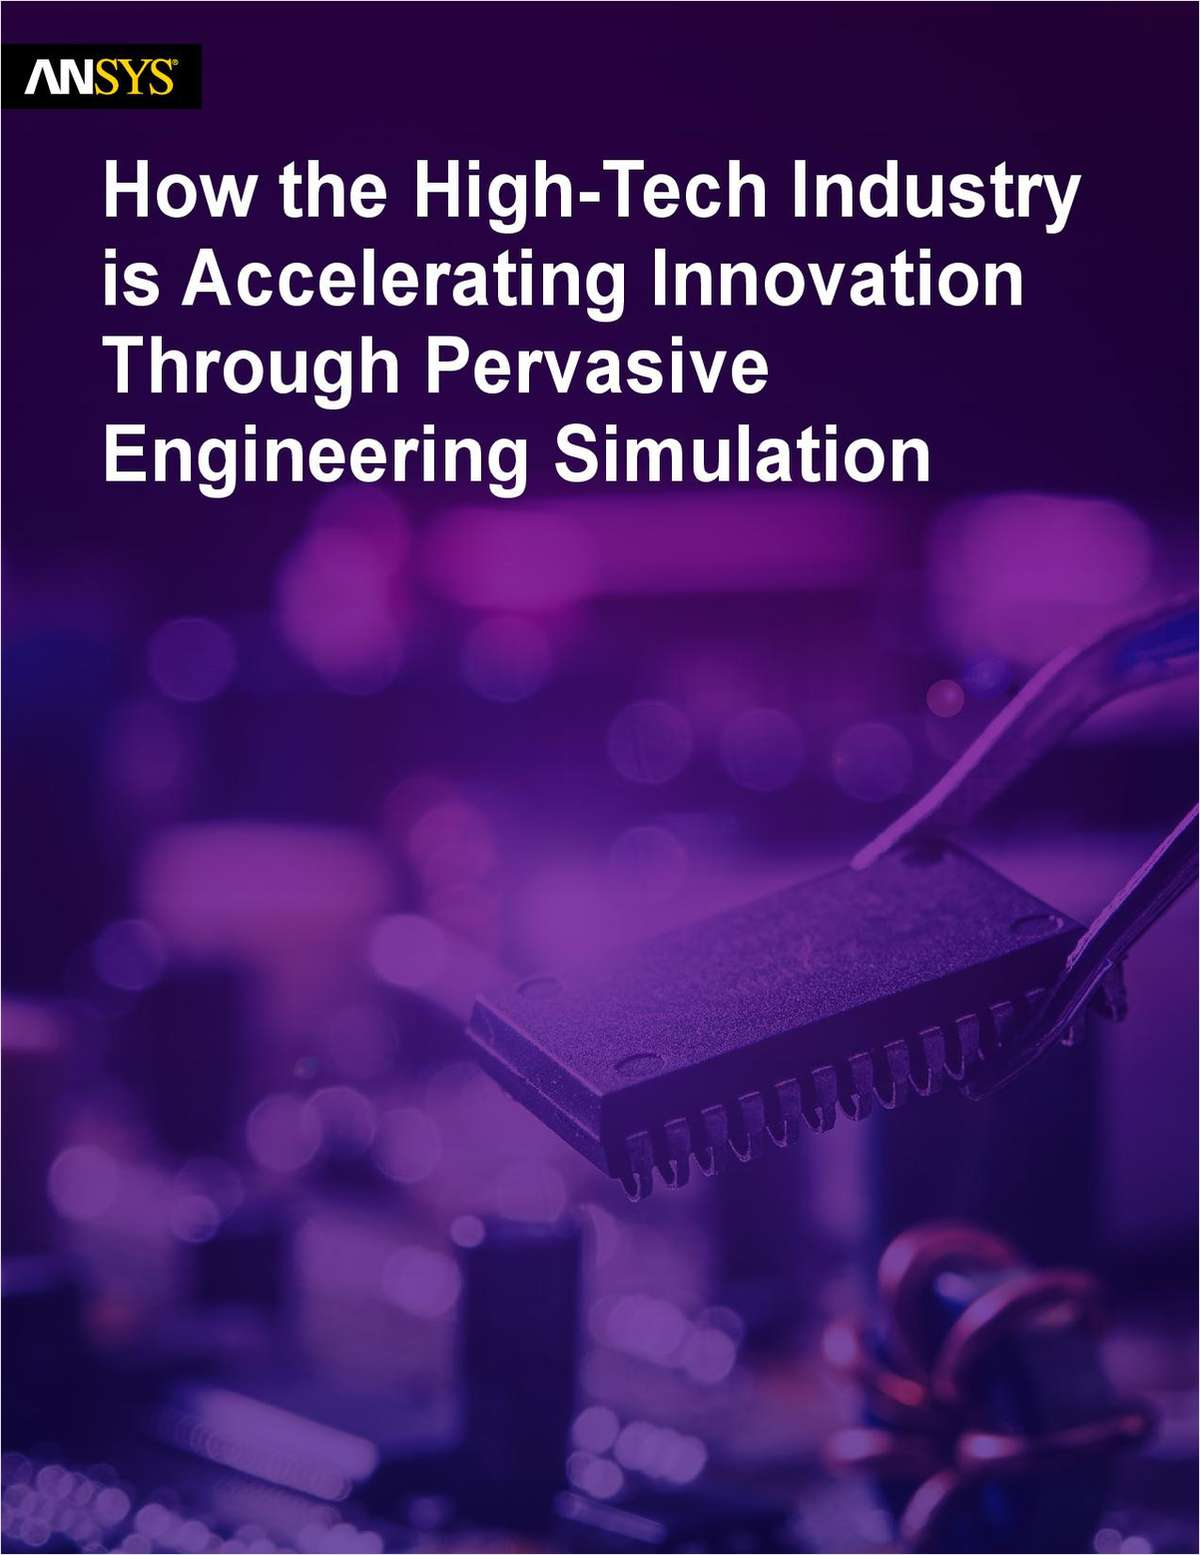 How the High-Tech Industry is Accelerating Innovation Through Pervasive Engineering Simulation